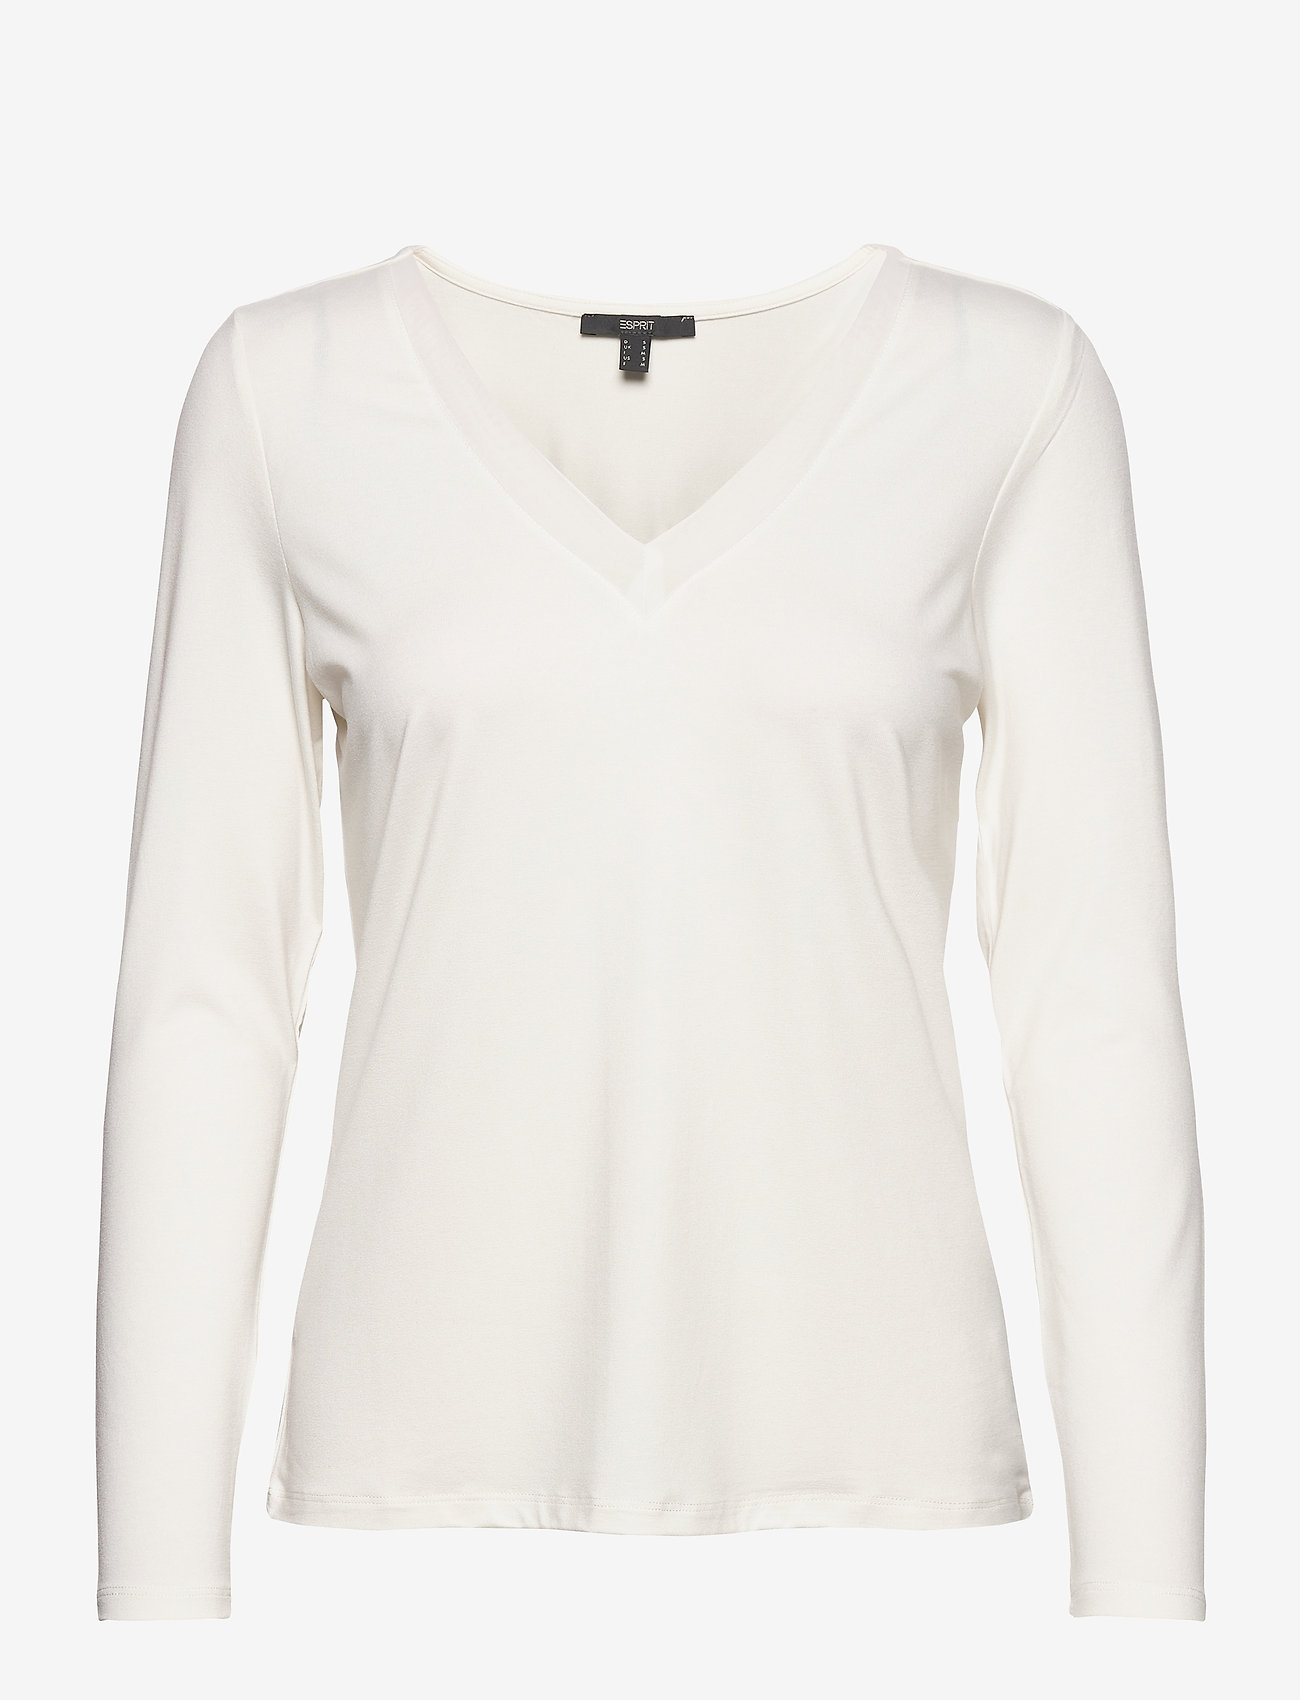 Esprit Collection - T-Shirts - long-sleeved tops - off white - 0